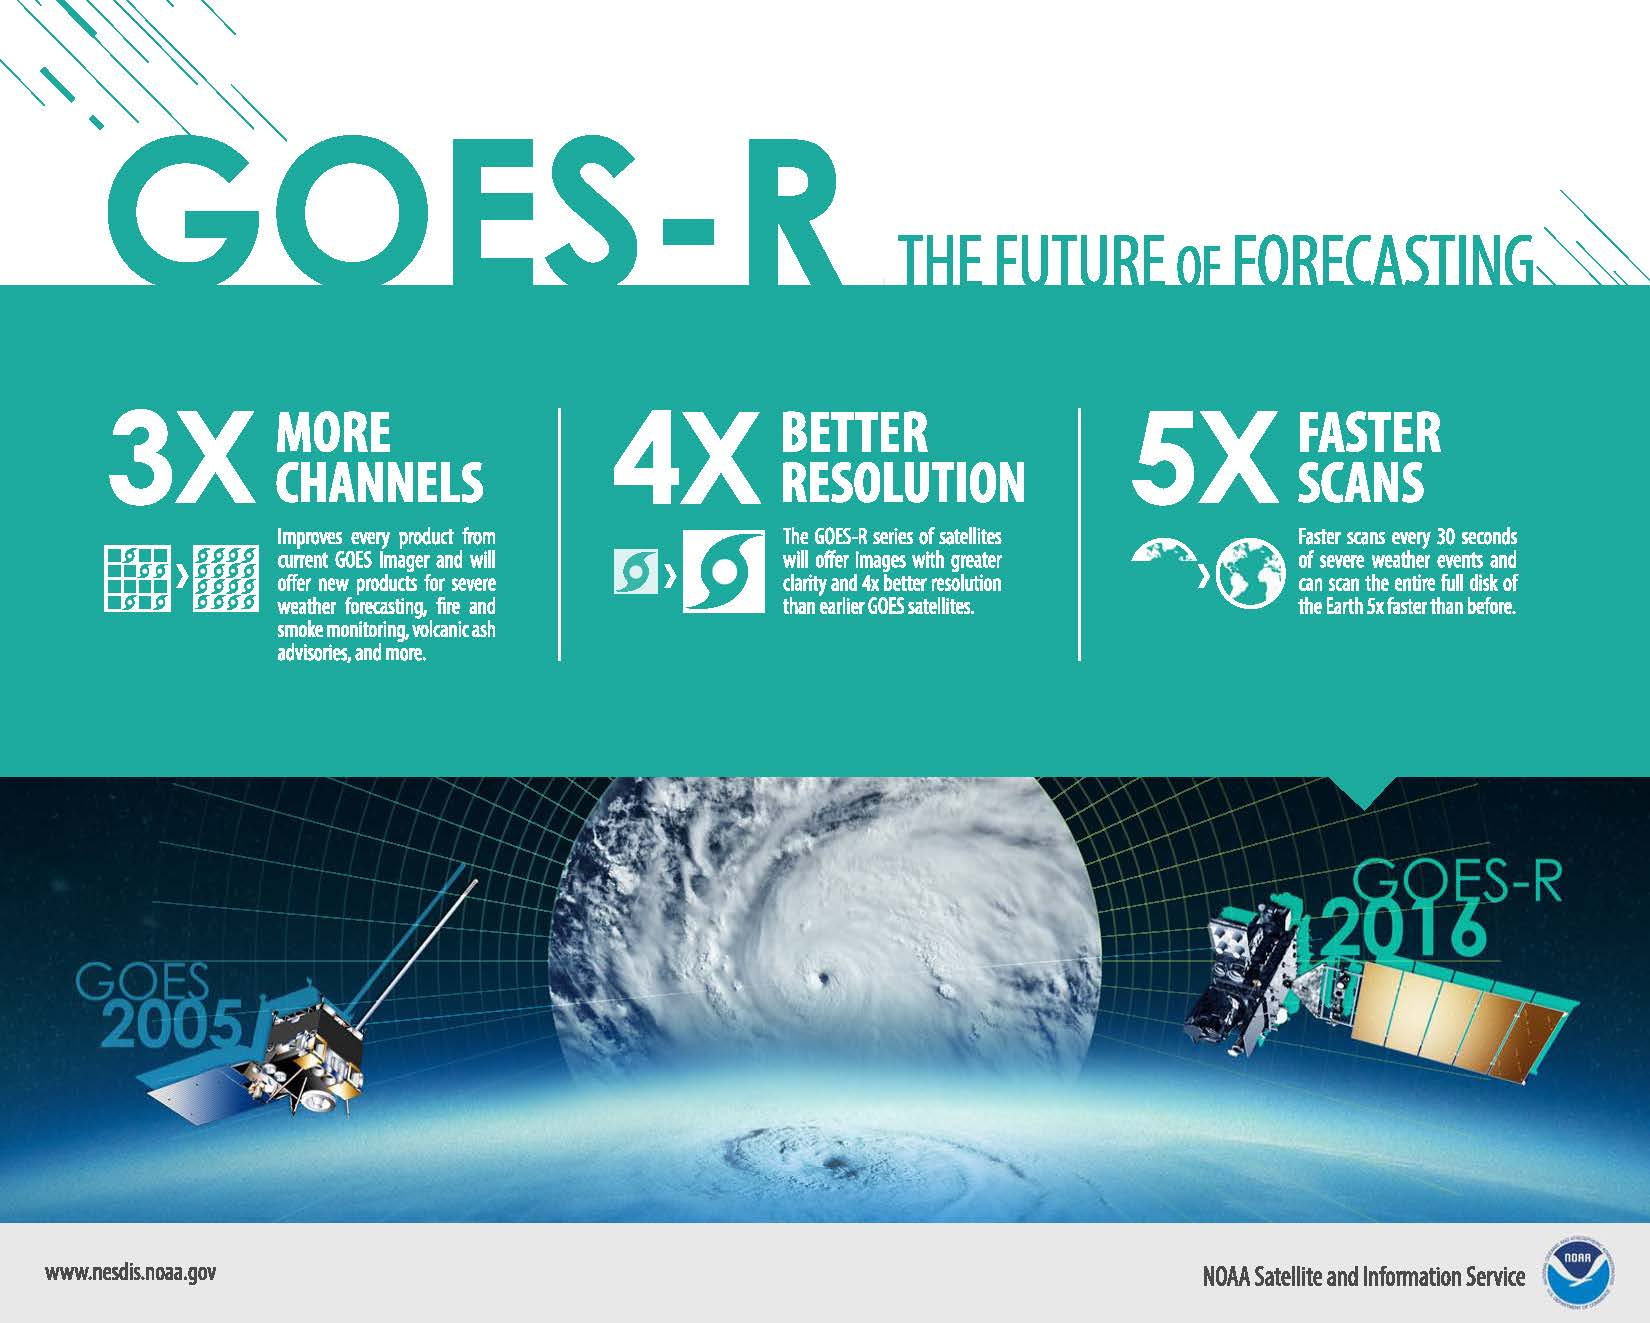 GOES-R will enable NOAA to gather data using three times more channels, four times the resolution, five times faster than the current GOES satellites.